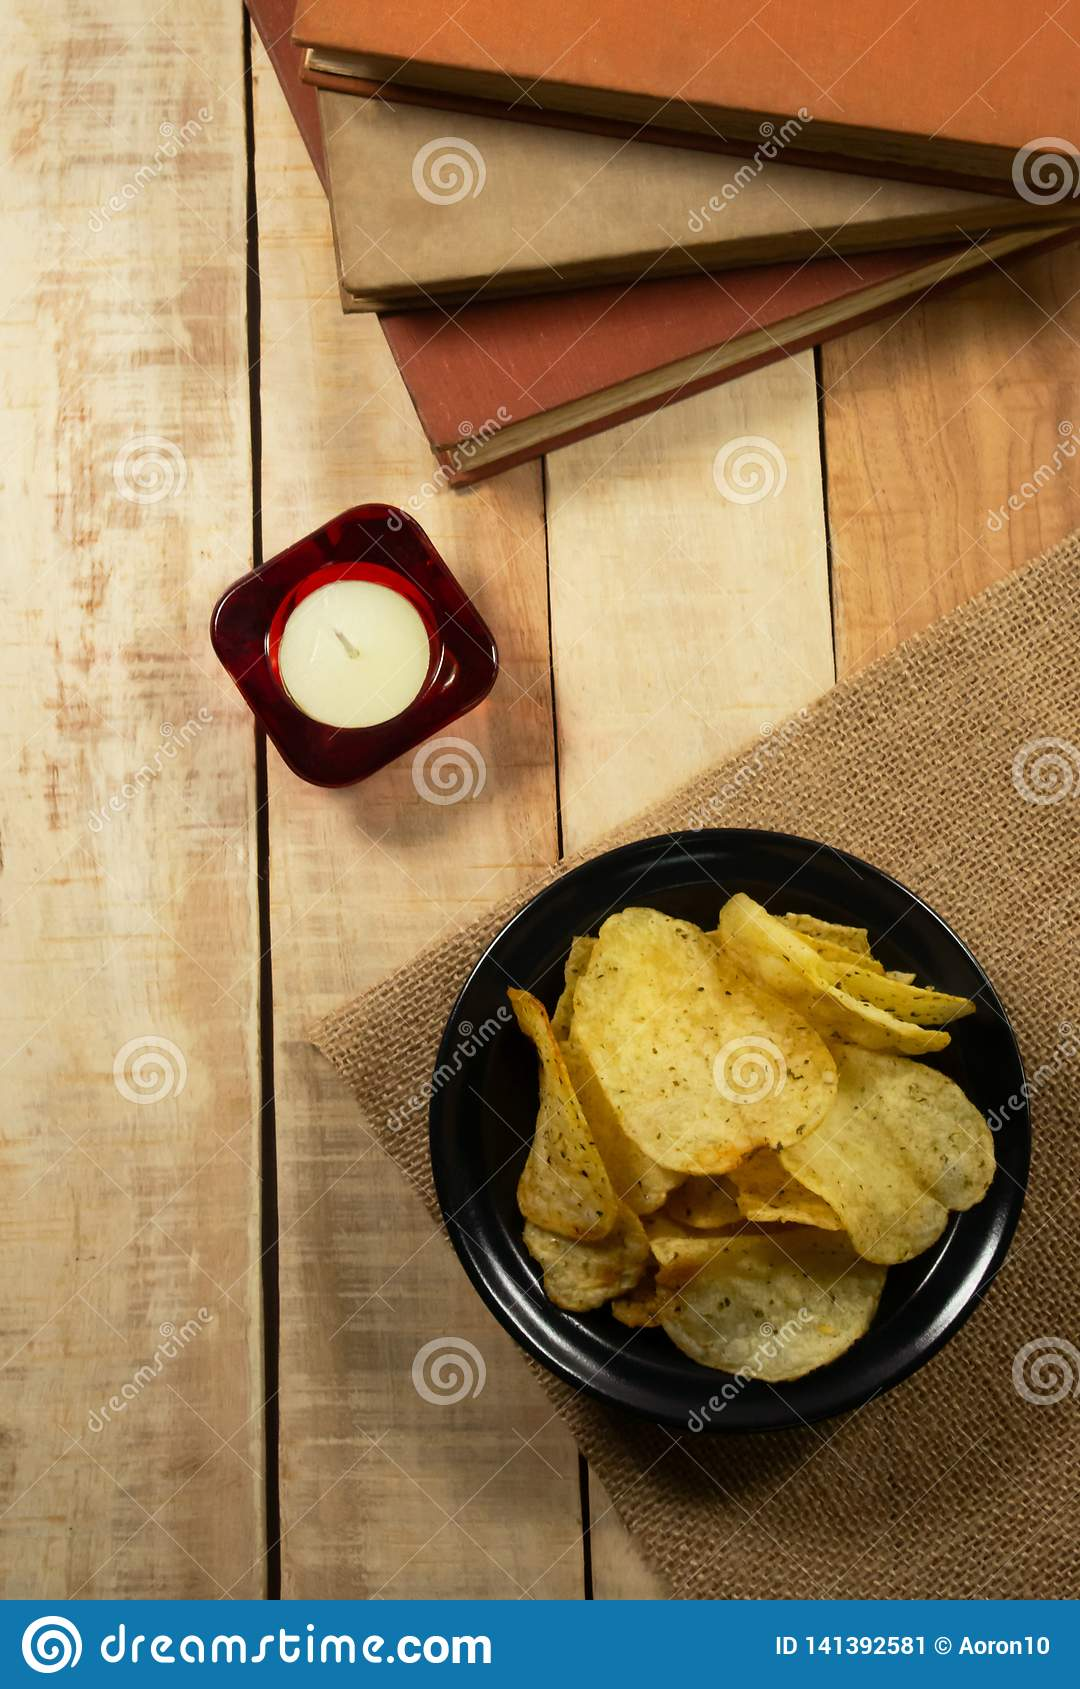 Potato chips in a black bowl, aromatherapy candles and books on a wooden floor.